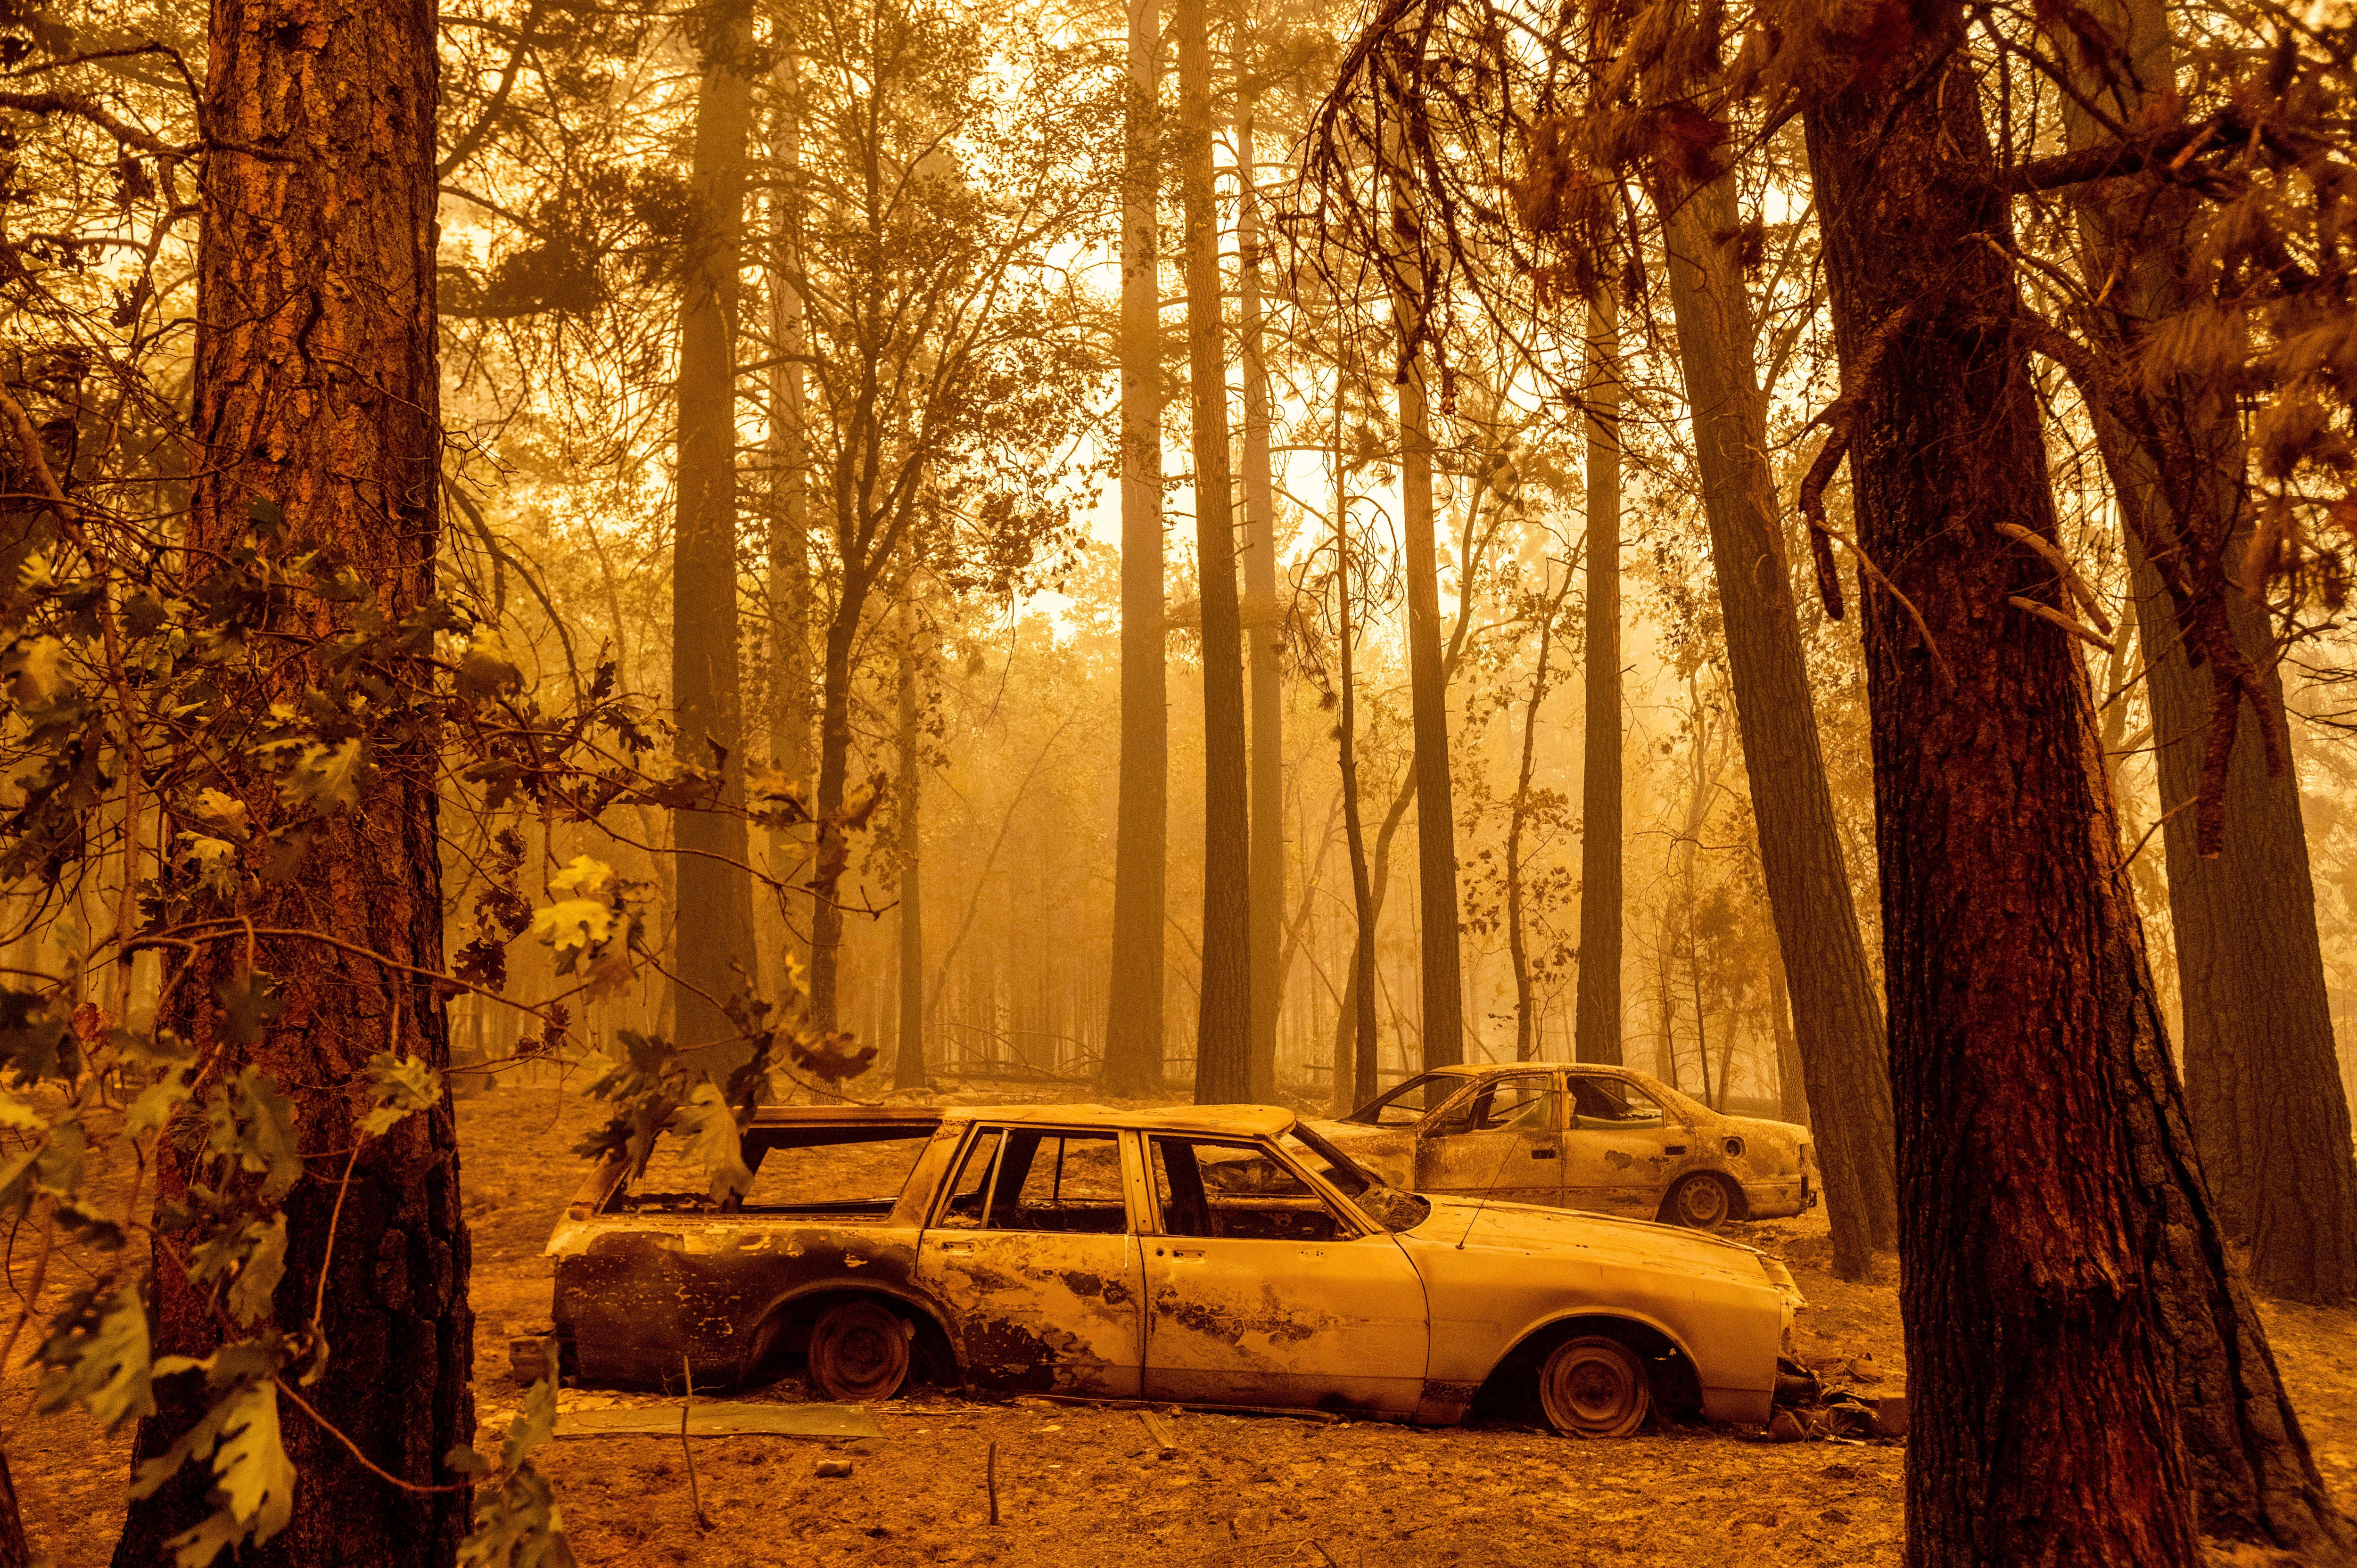 Going to be a long haul : Massive Dixie Fire merges with Fly Fire, tears through small town as California burns